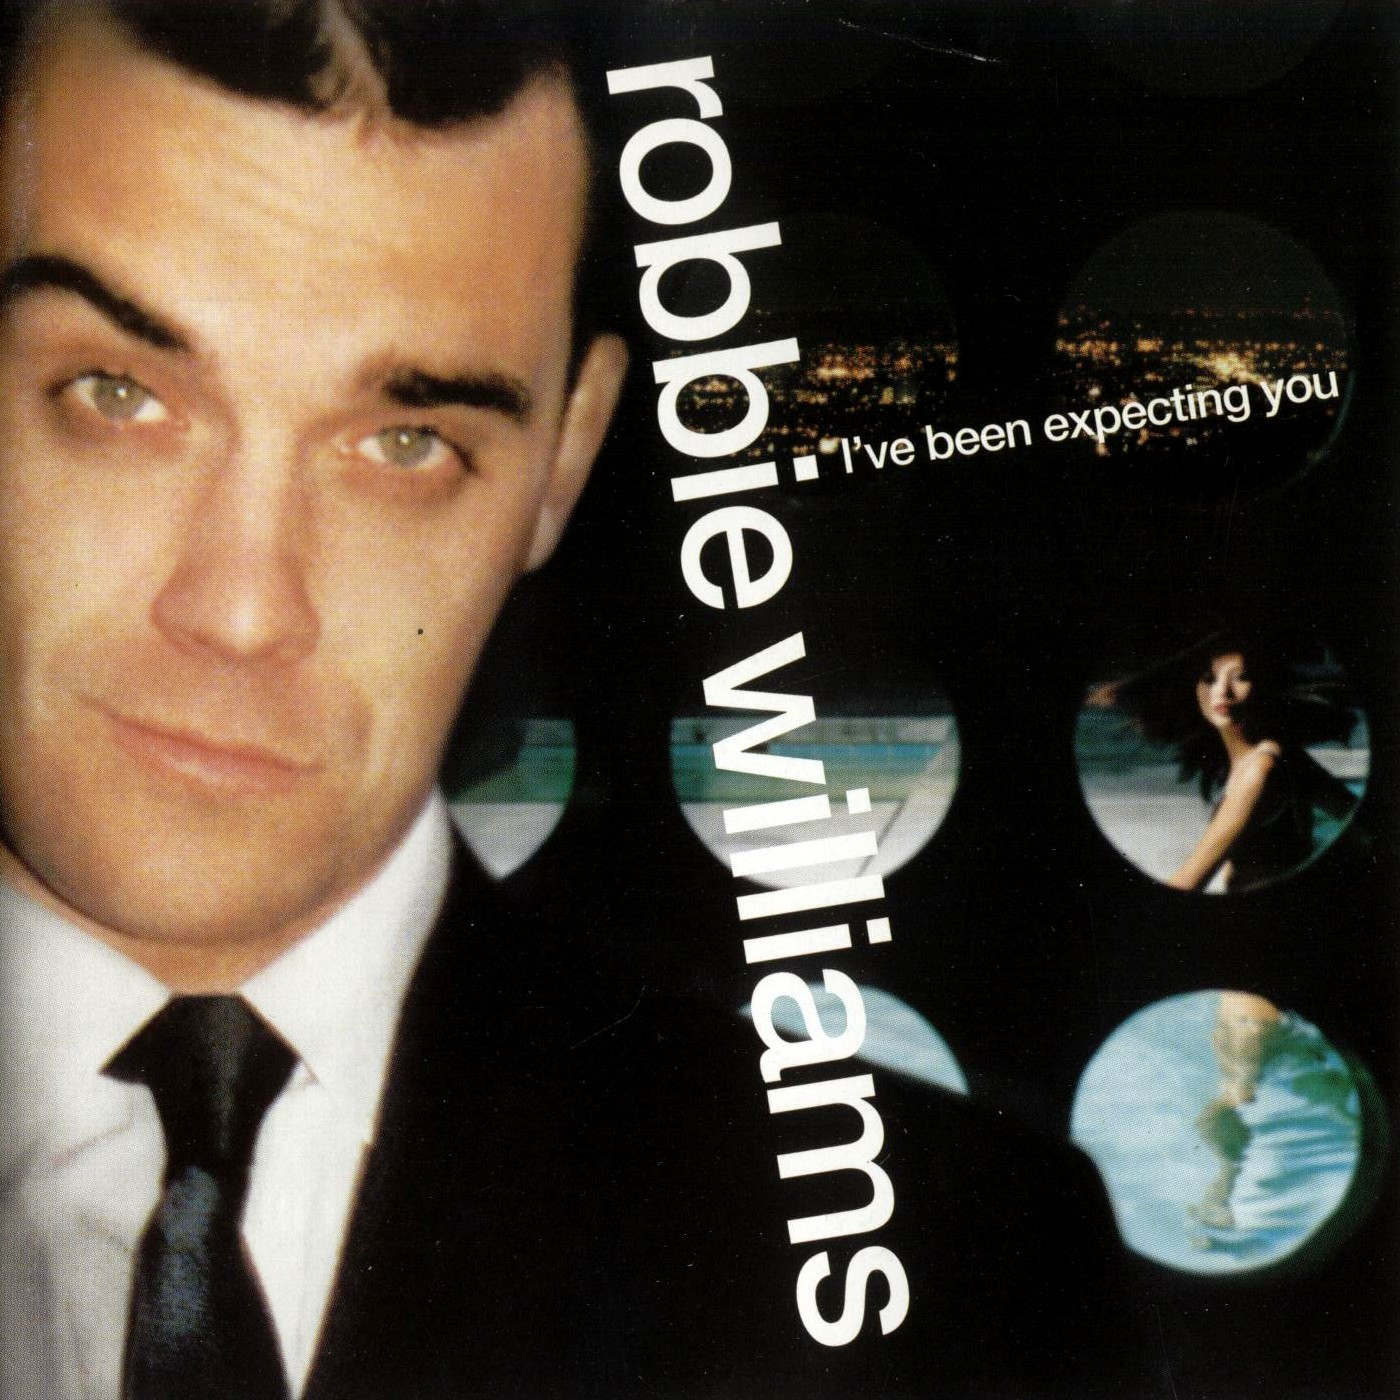 http://3.bp.blogspot.com/-ZpMvxd3uTmM/UMTBYeB07SI/AAAAAAAANCY/0eC_X9PvK8A/s1600/robbie+williams+she\'s+the+one+8.jpg